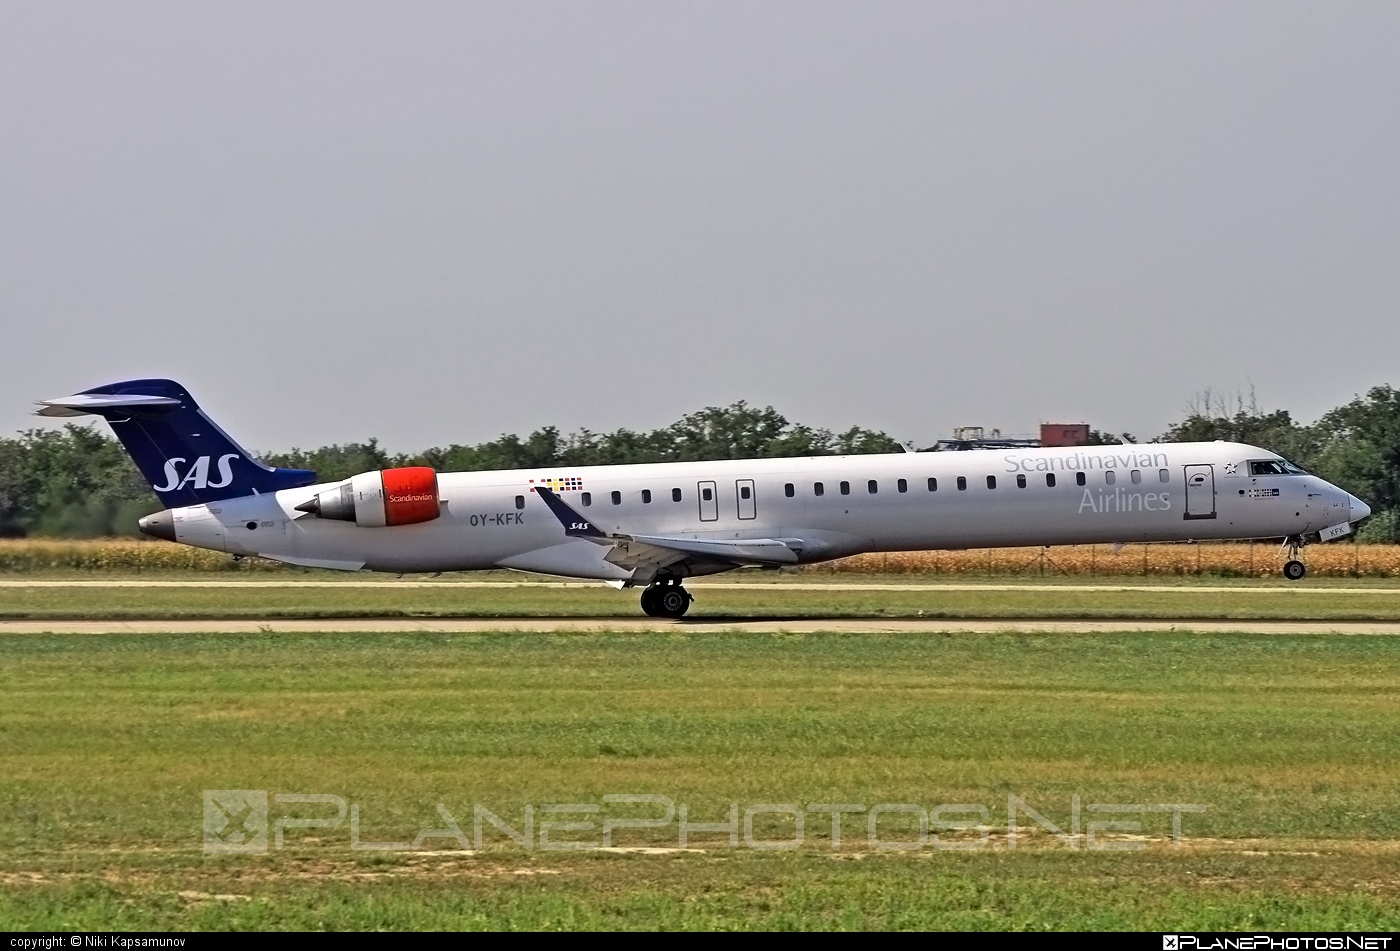 Bombardier CRJ900 - OY-KFK operated by Scandinavian Airlines (SAS) #bombardier #crj900 #sas #sasairlines #scandinavianairlines